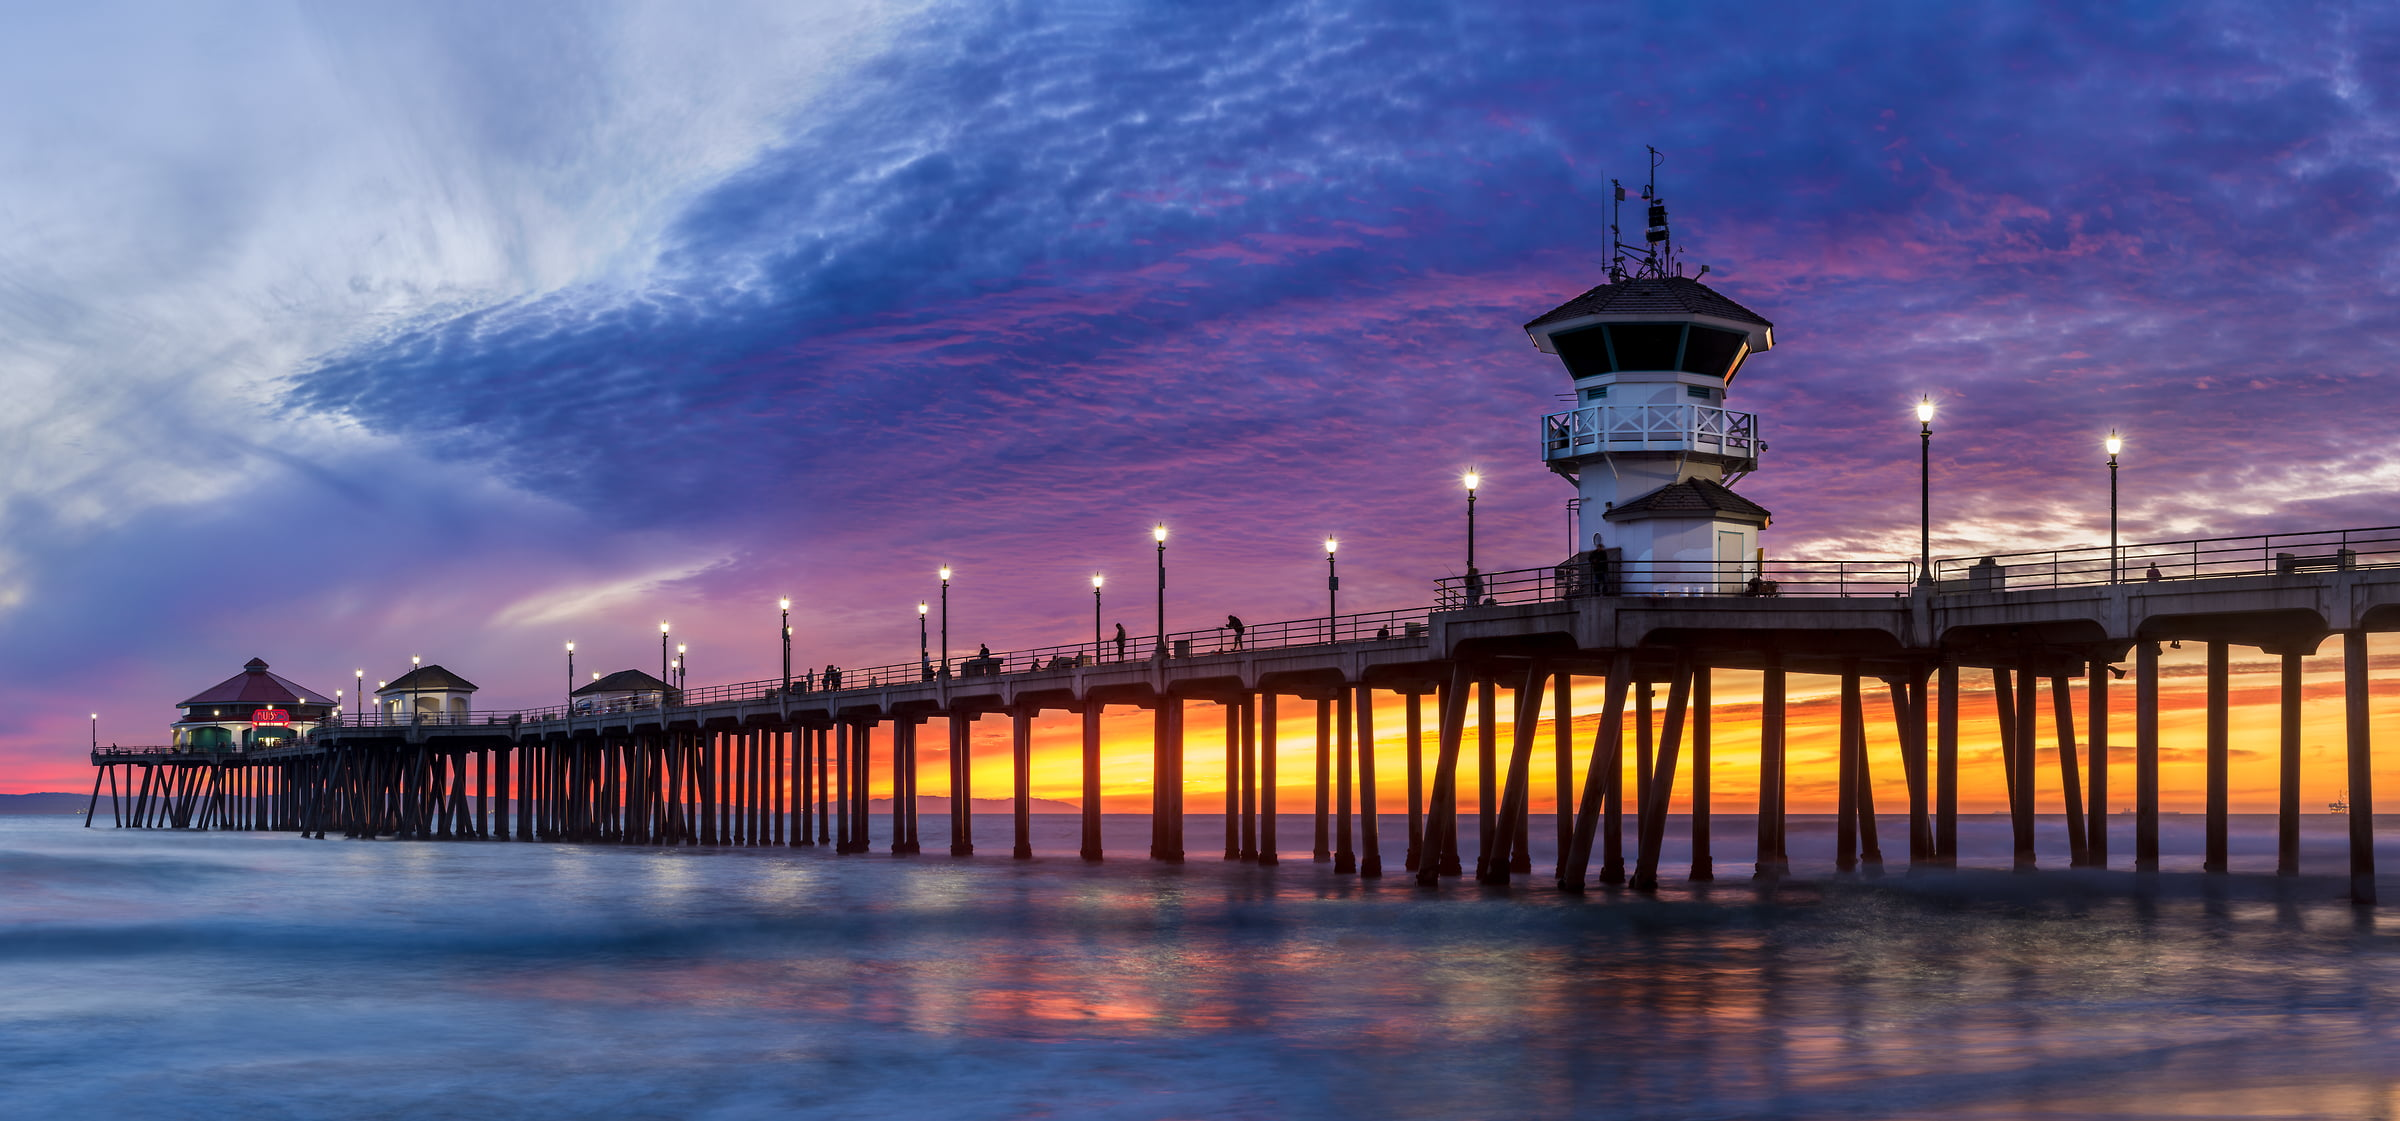 130 megapixels! A very high resolution, large-format VAST photo of the Huntington Beach Pier at sunset; created by Jim Tarpo in Huntington Beach, California